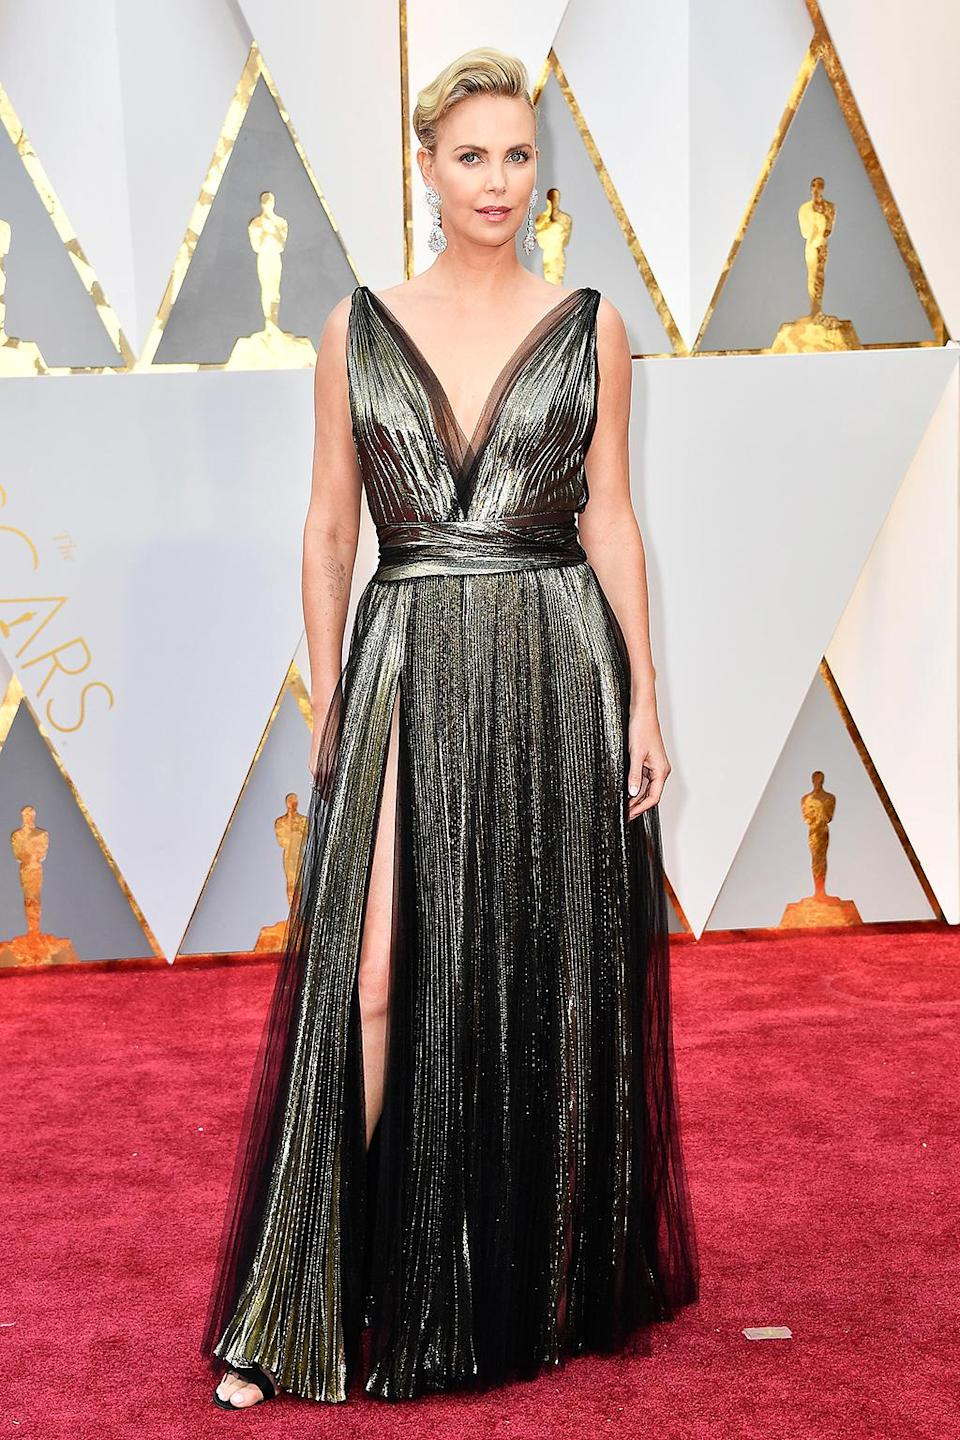 <p>Charlize Theron attends the 89th Annual Academy Awards at Hollywood & Highland Center on February 26, 2017 in Hollywood, California. (Photo by Frazer Harrison/Getty Images) </p>